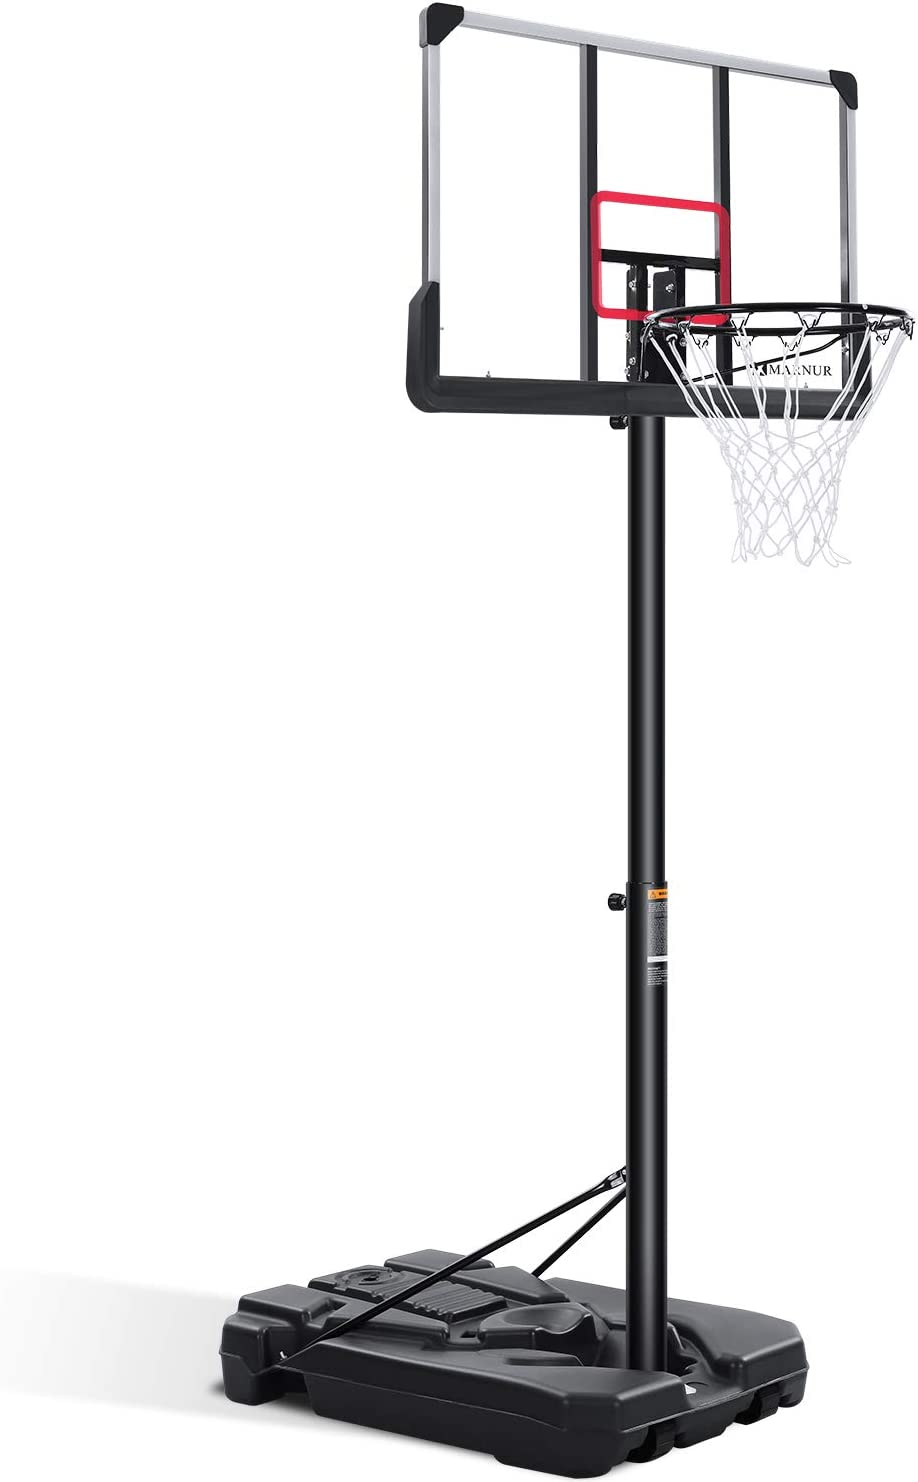 MARNUR Portable Basketball Hoop & Goal Basketball System Basketball Equipment with Height Adjustable 7ft 6in-10ft with 44 Inch Backboard & Wheels for Youth Kids Indoor Outdoor